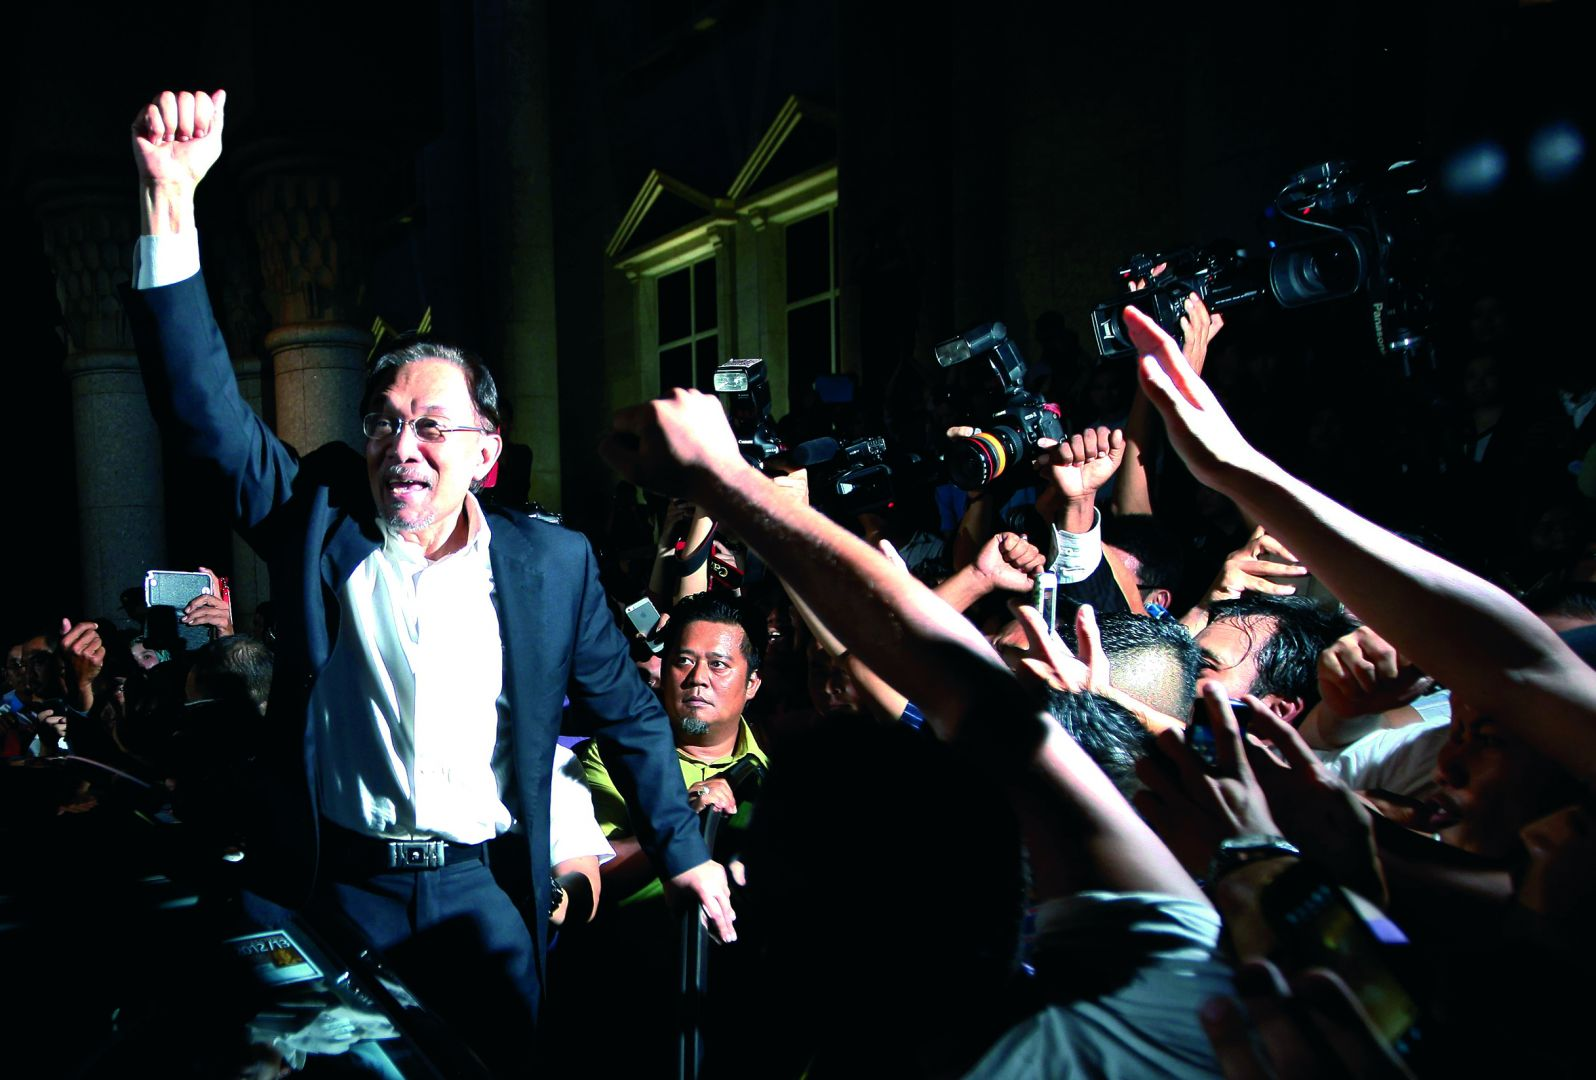 Malaysian opposition leader Anwar Ibrahim shouts to his supporters outside court yesterday. His lawyers won a stay of the sentence pending an appeal.